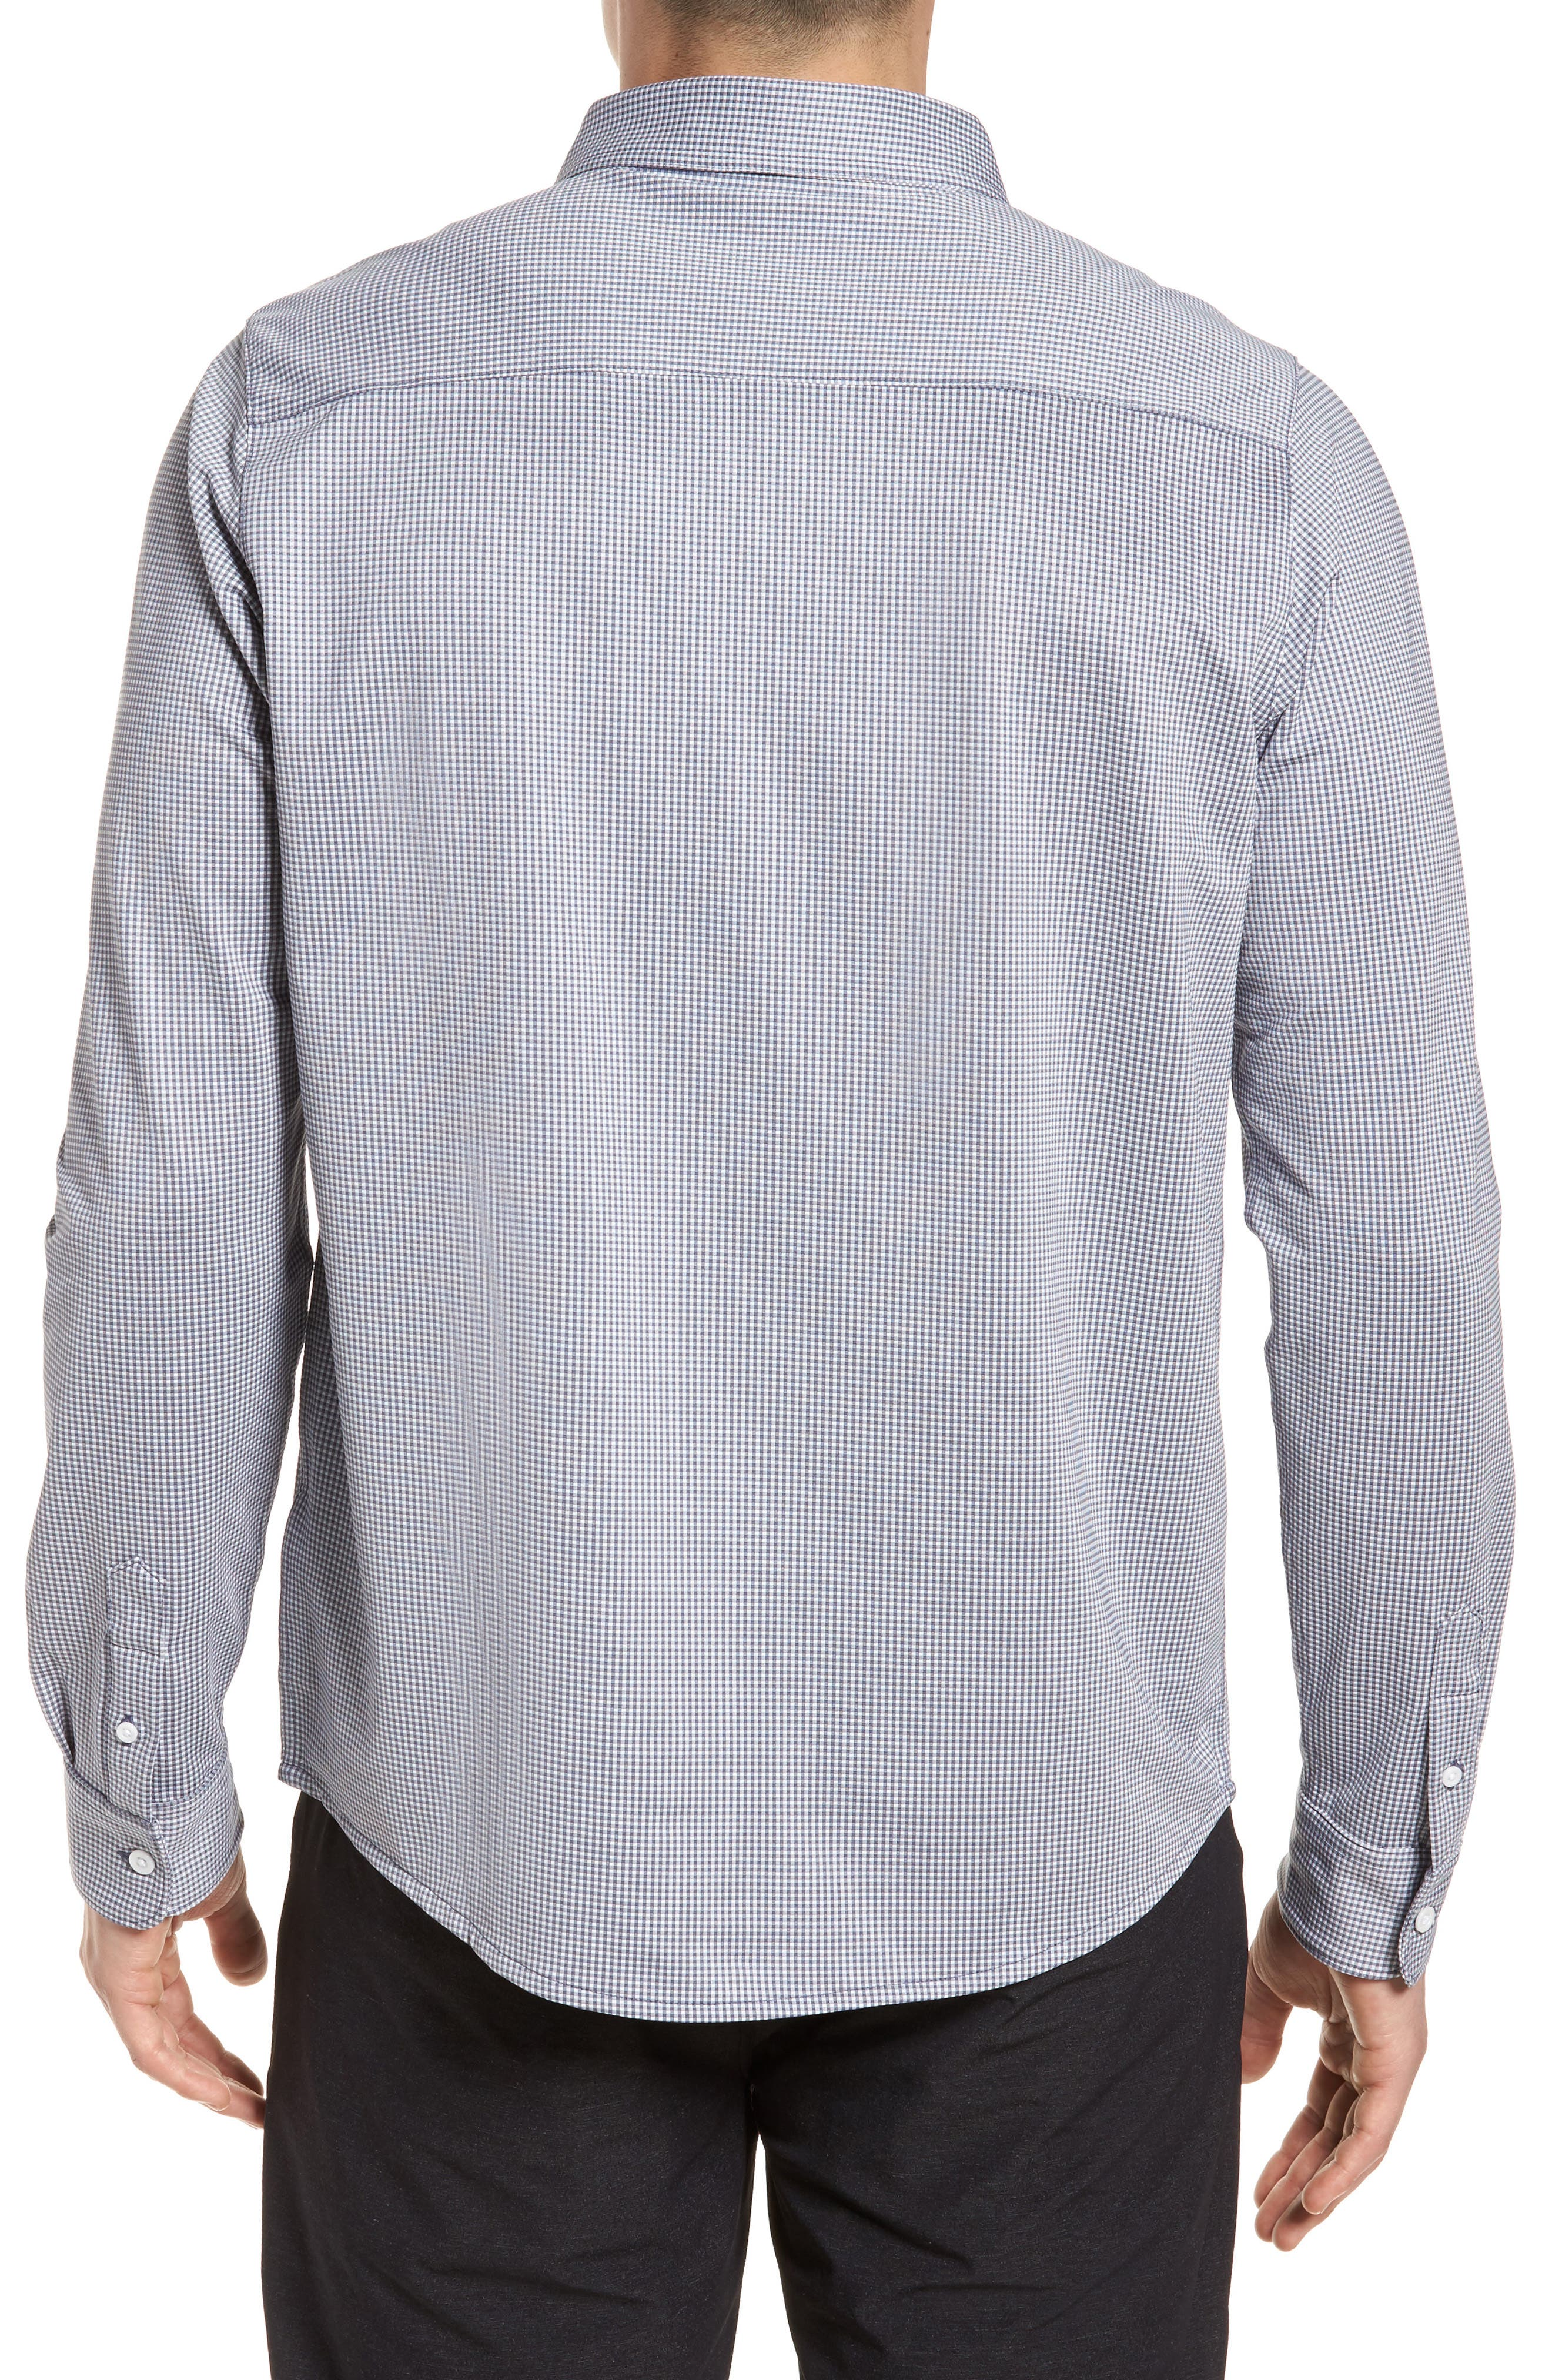 Couig Gingham Sport Shirt,                             Alternate thumbnail 3, color,                             White/ Grisaille